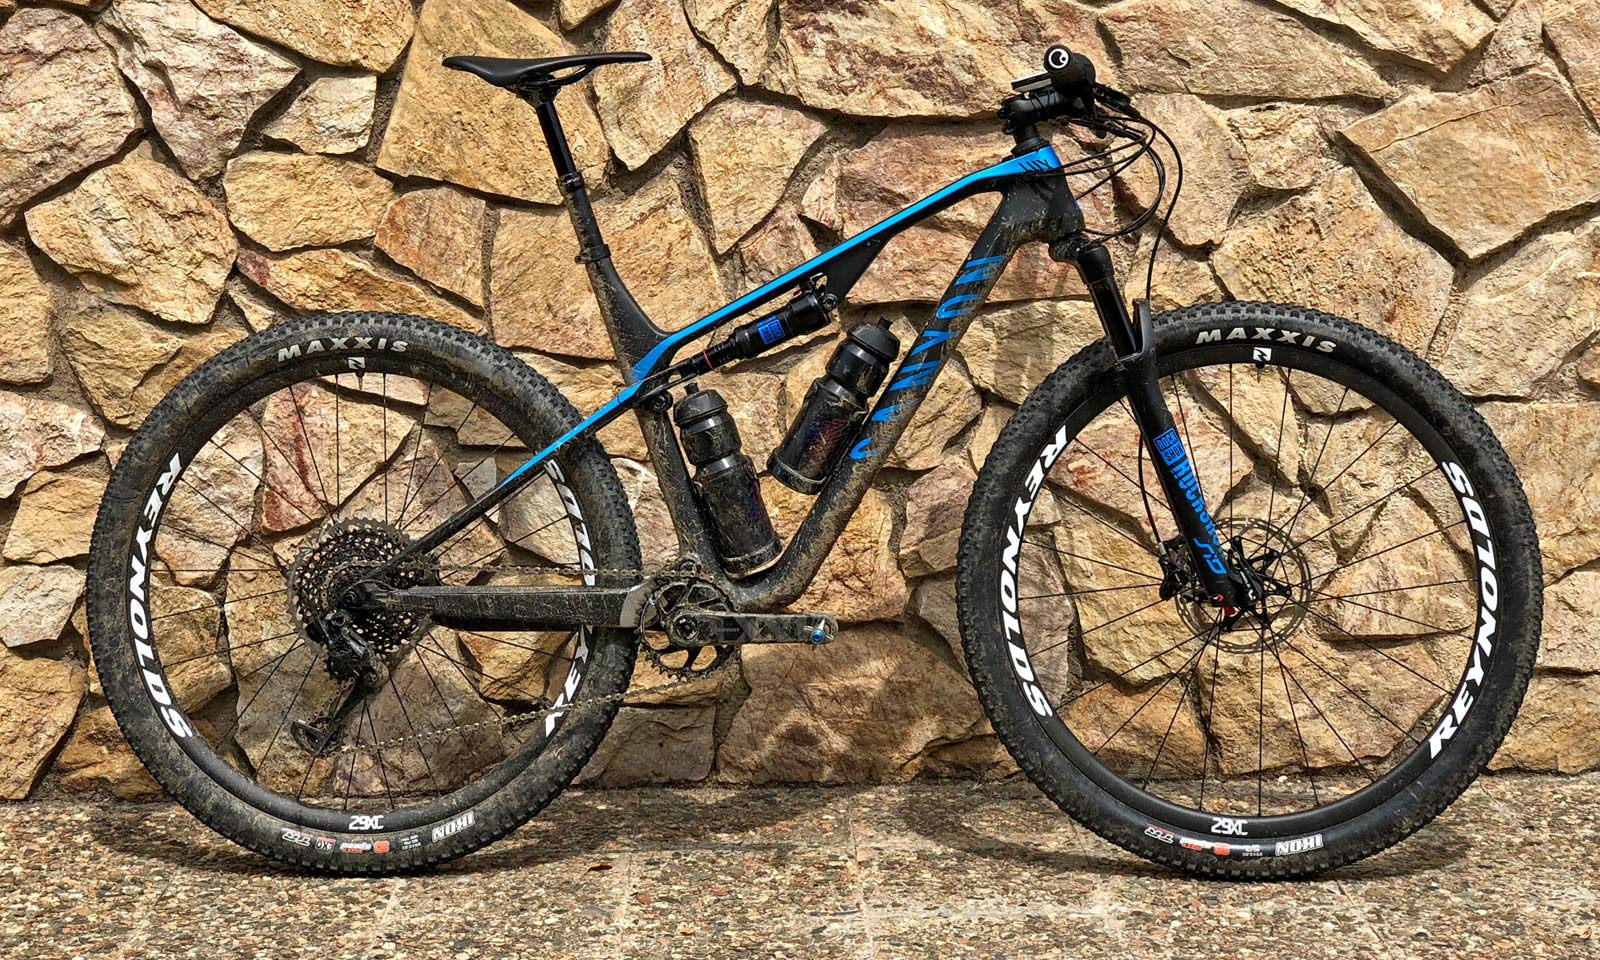 2019 Canyon Lux reshapes XC/XCM race mountain bike with all